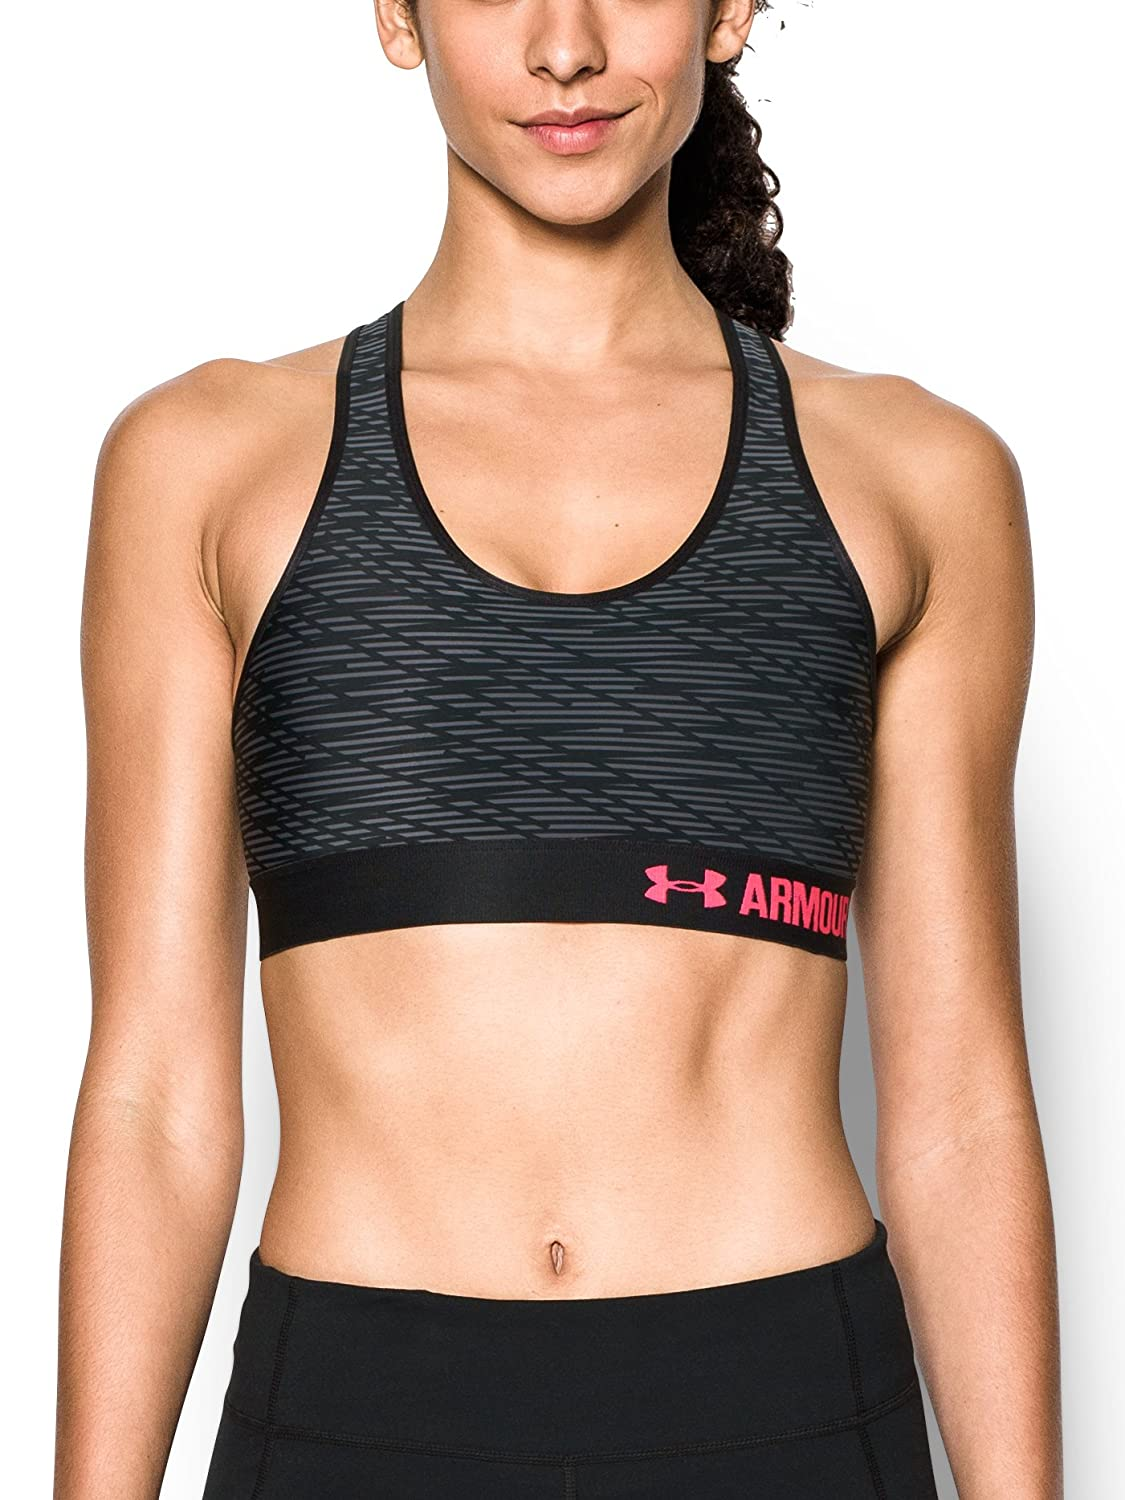 Under Armour Sujetador Deportivo Medio, Estampado, para Mujeres